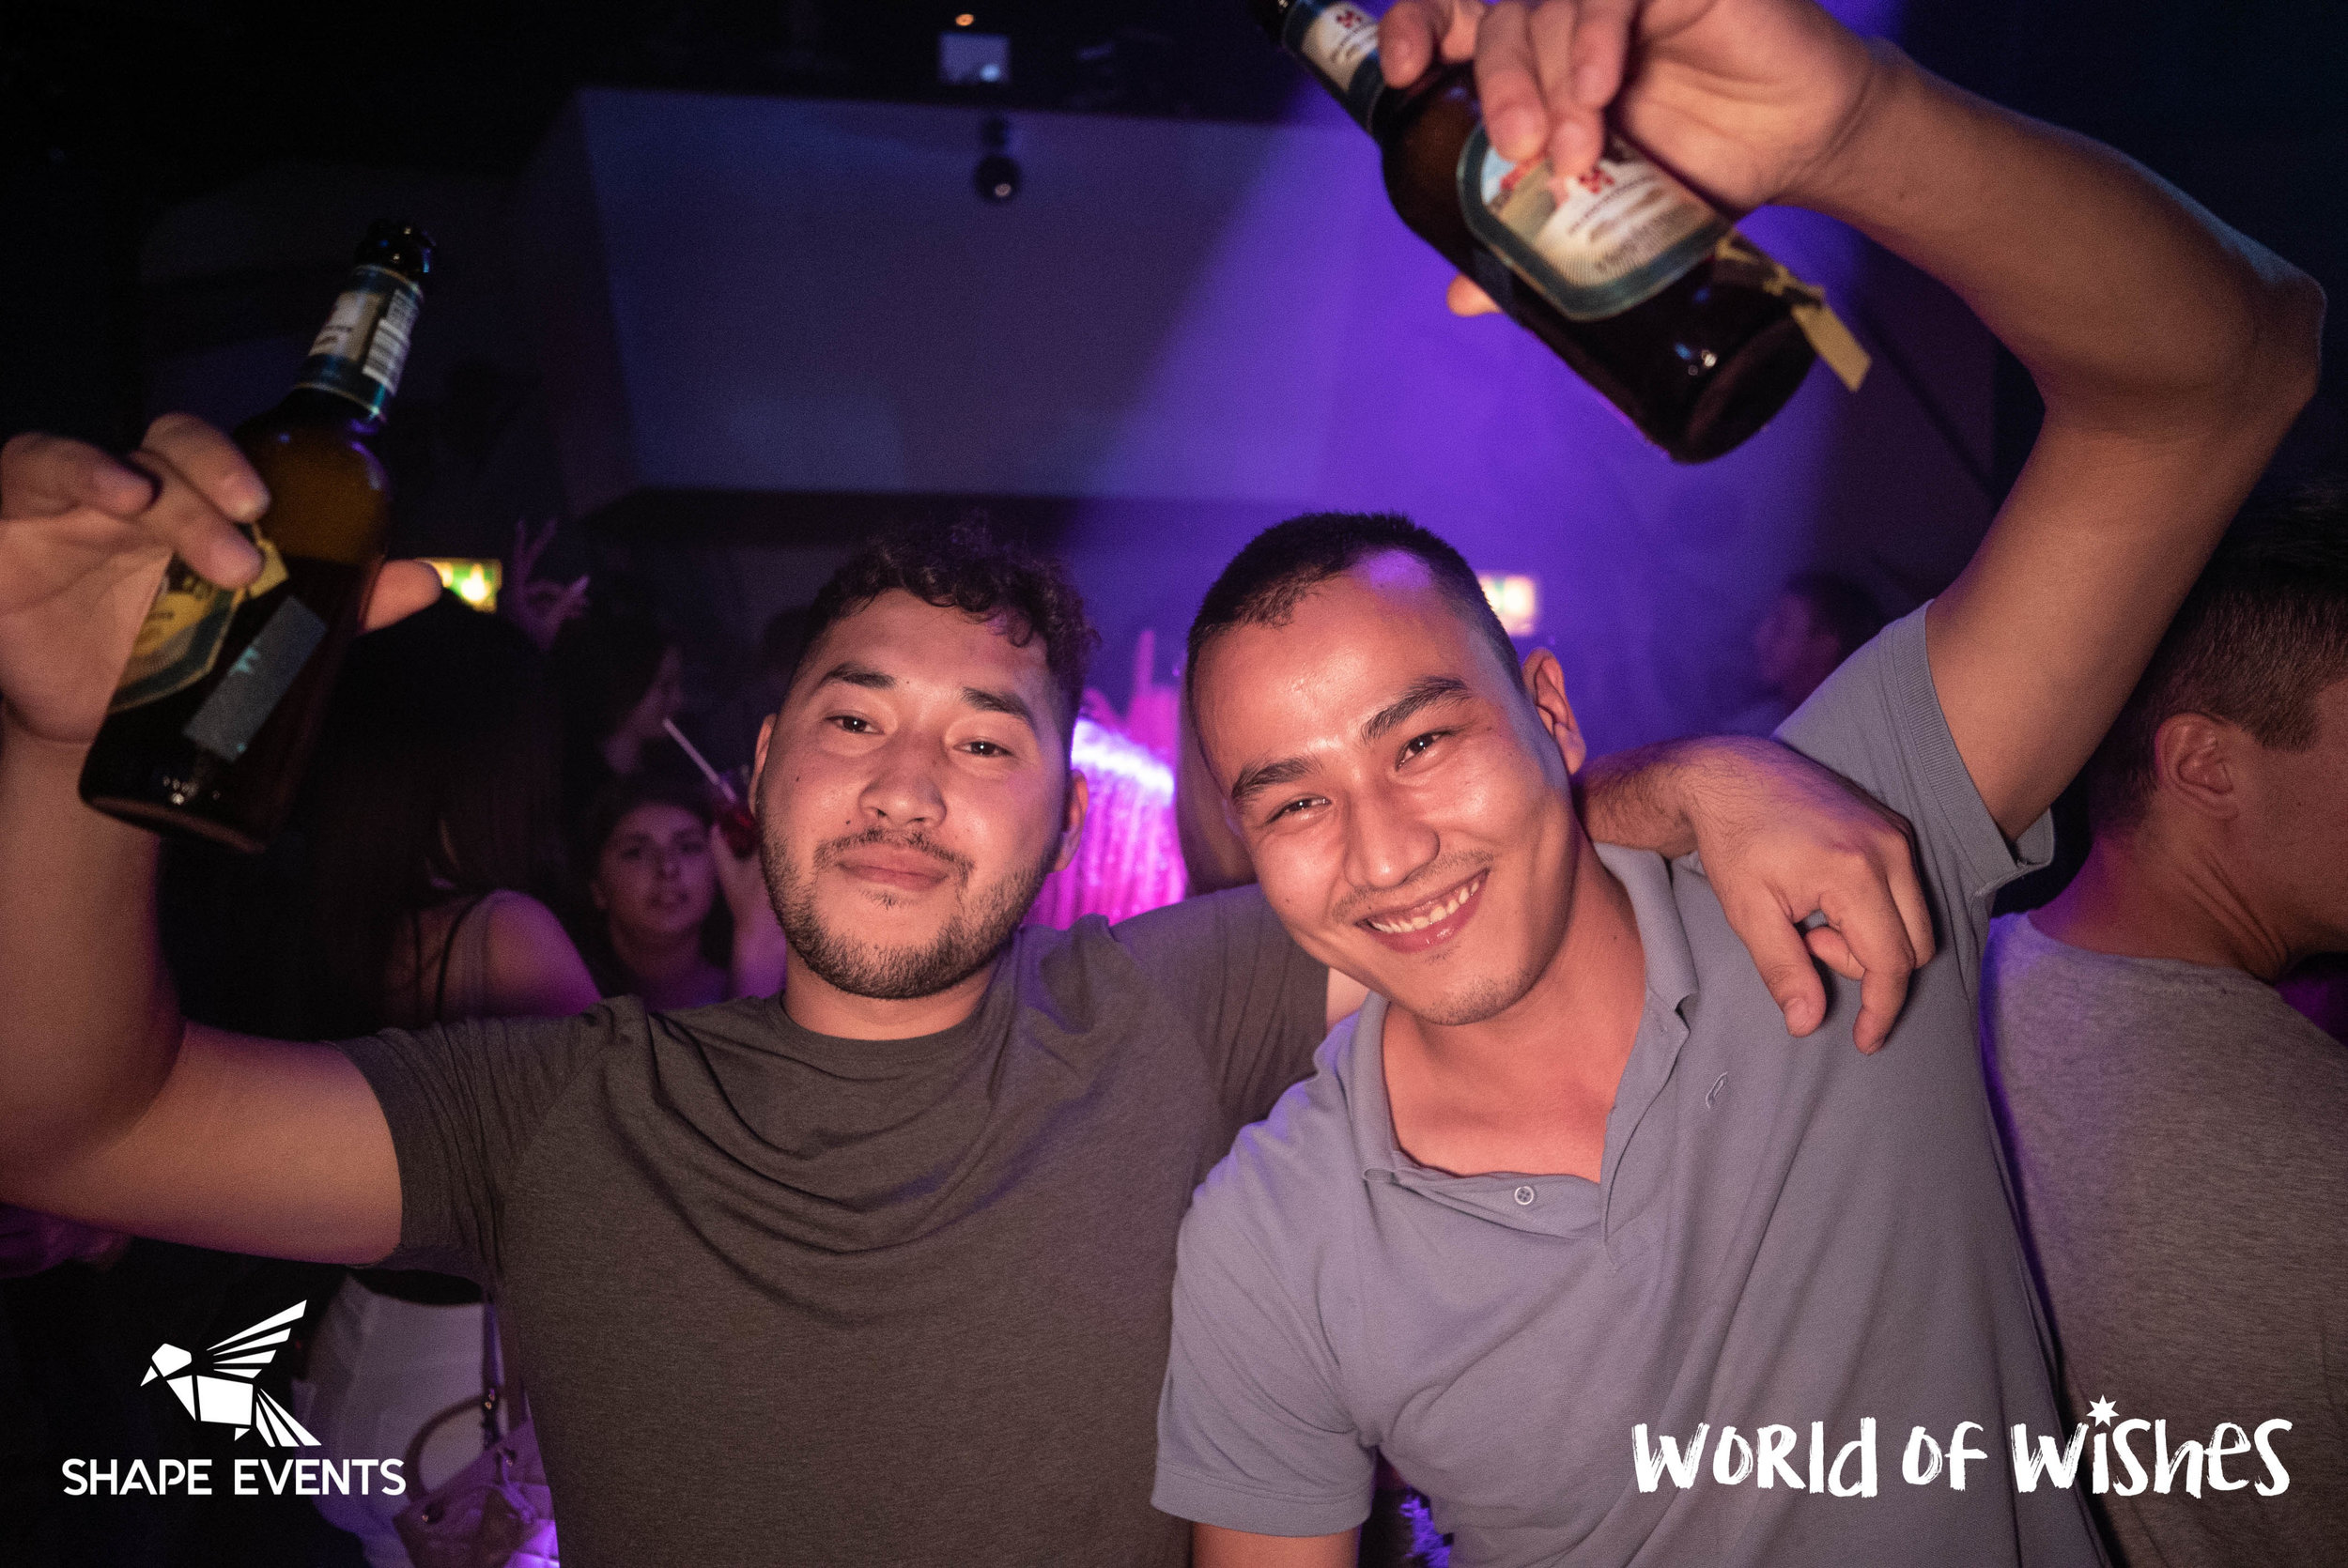 WordOfWishes_Party_Guest-02147.jpg